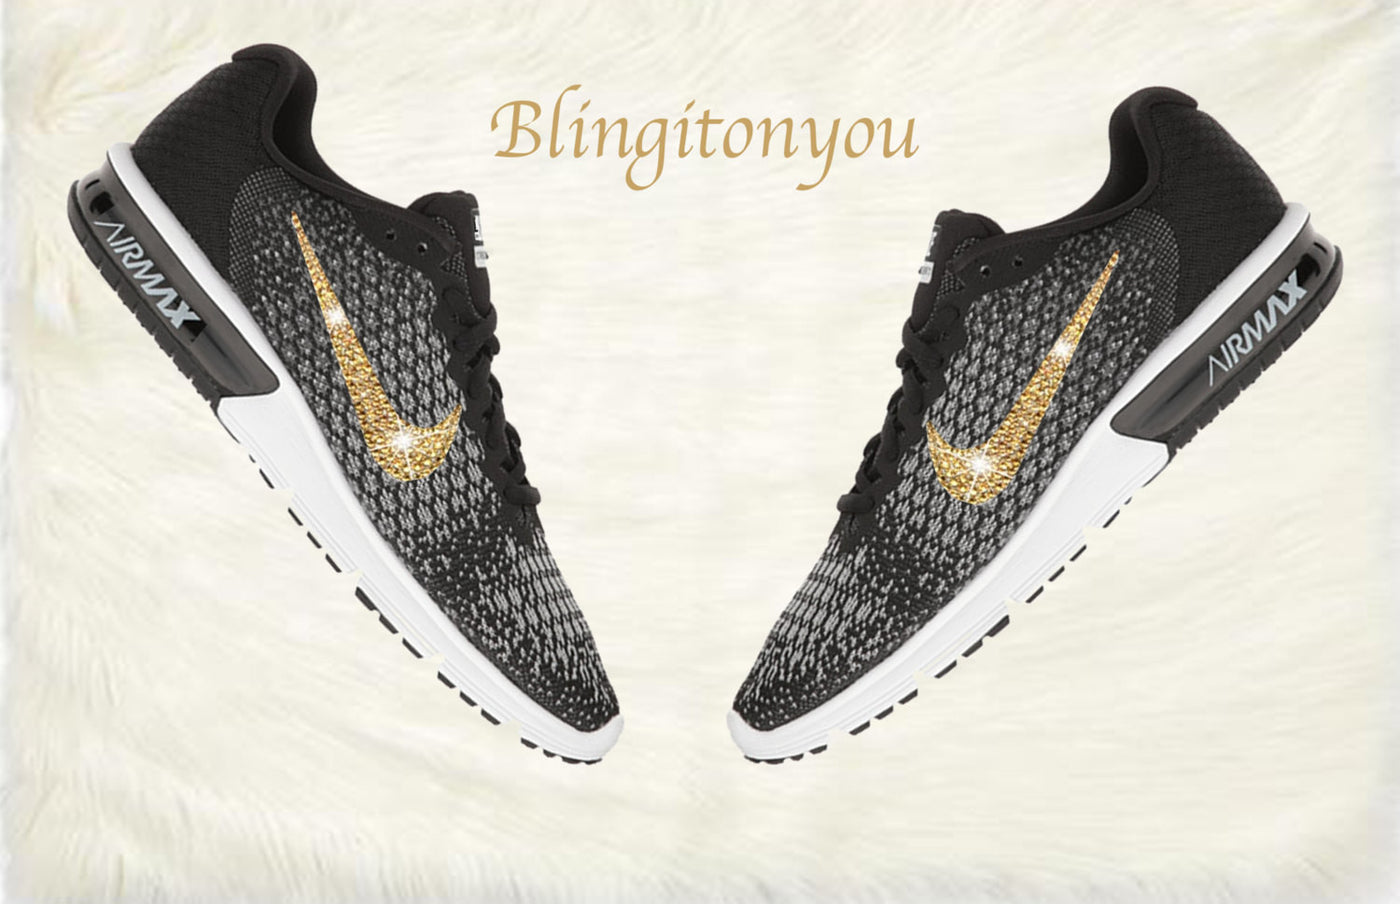 Swarovski Nike Air Max Sequent 2 Shoes Black Blinged Out With Gold  Swarovski Crystals - Nike ... 94347c2fea